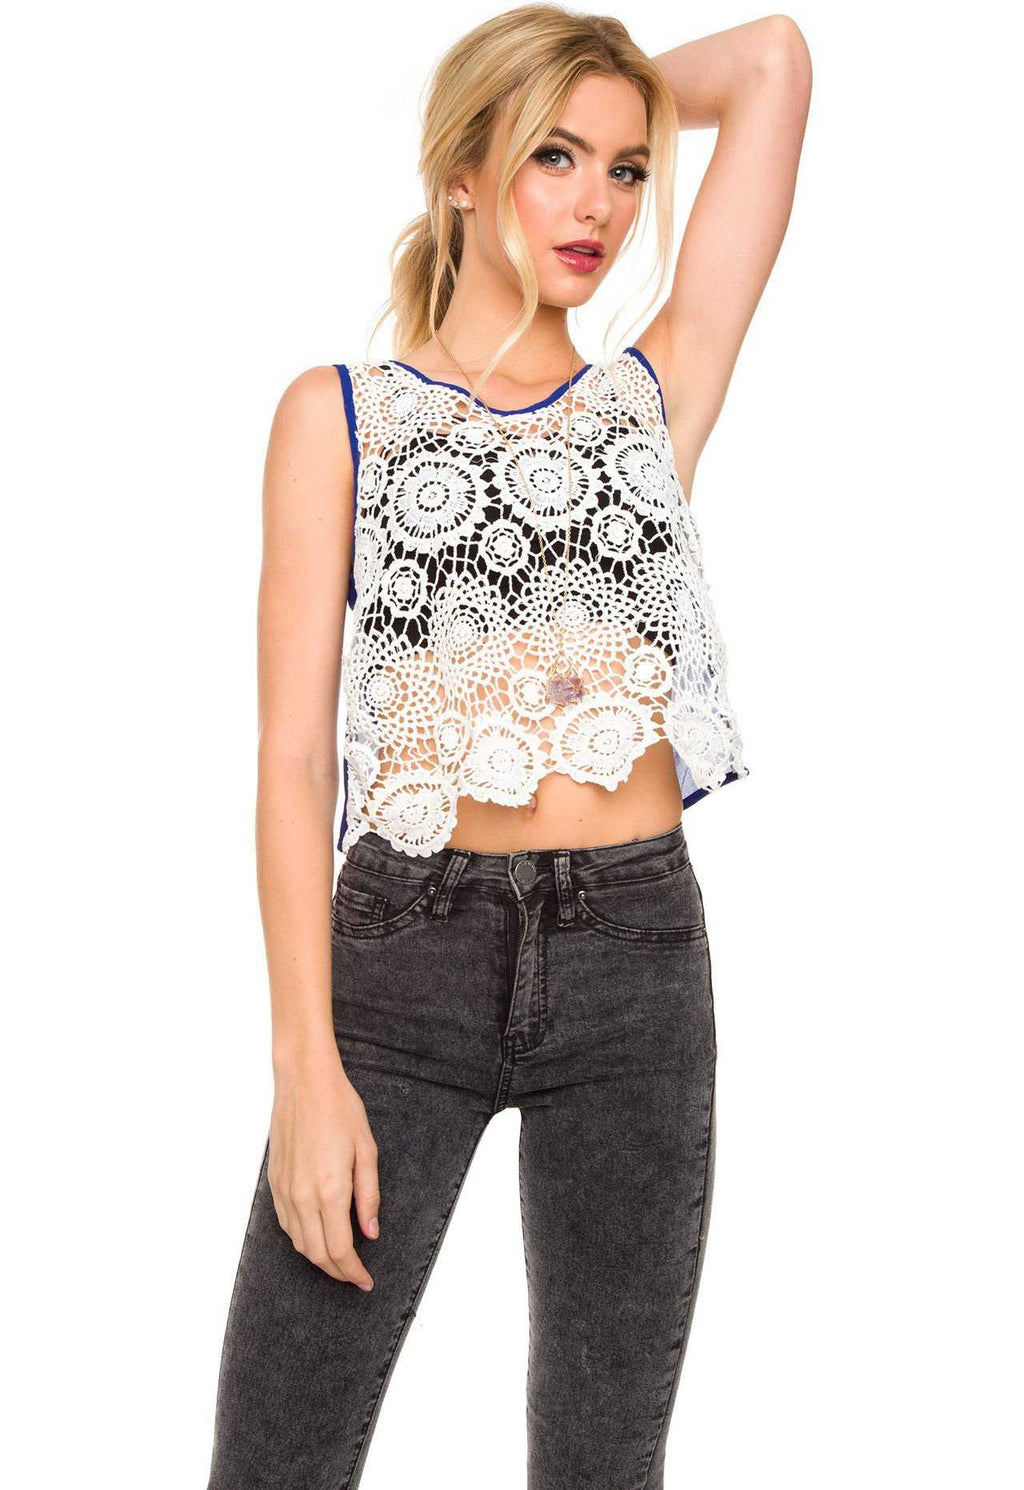 Tops - Maryland Lace Crop Top - Blue